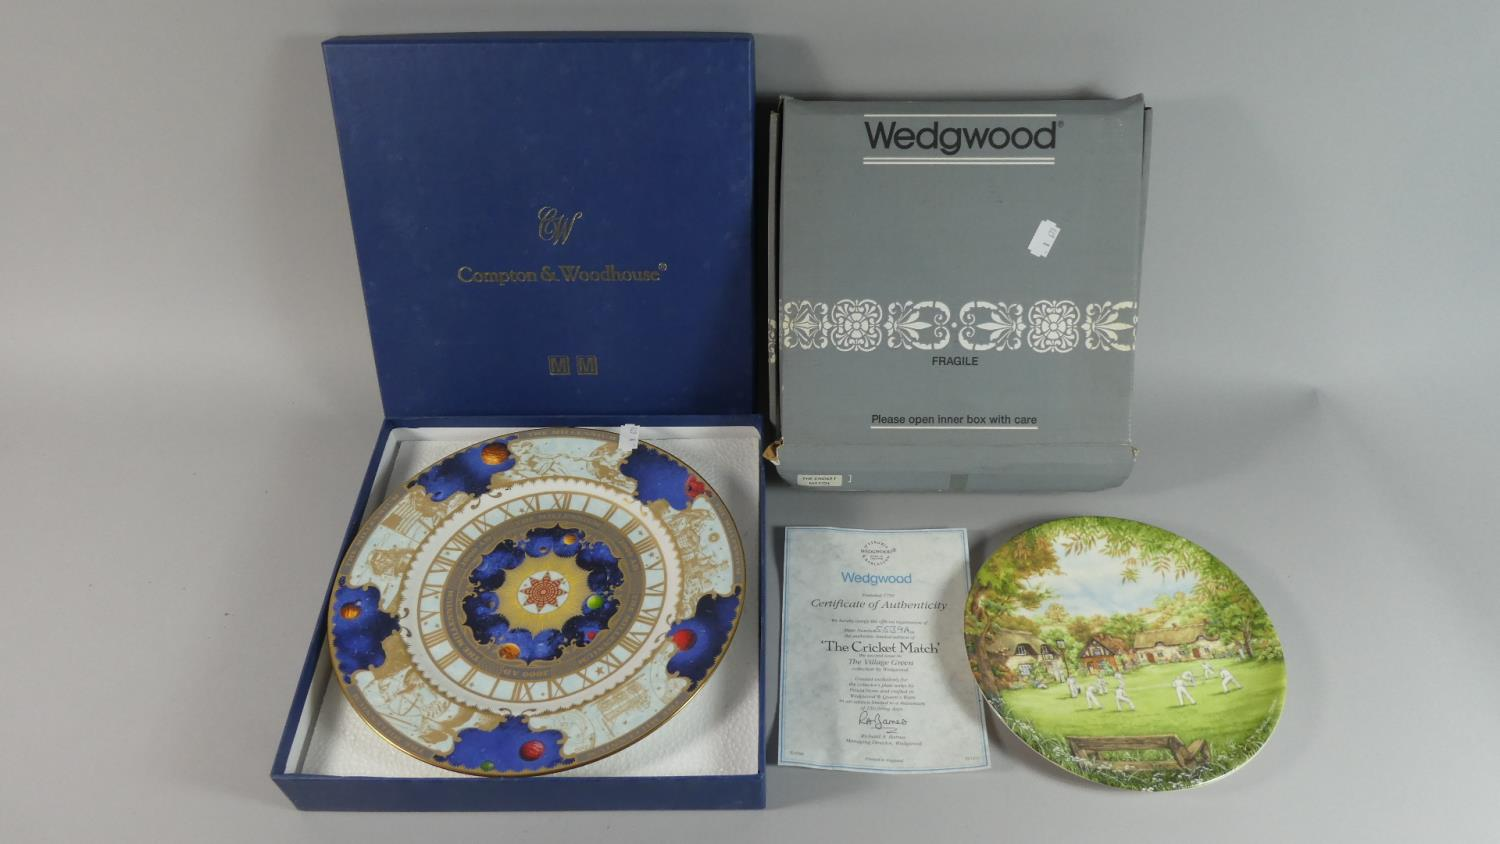 Lot 262 - A Boxed Royal Worcester Millenium Plate and Wedgwood Cricket Match Plate